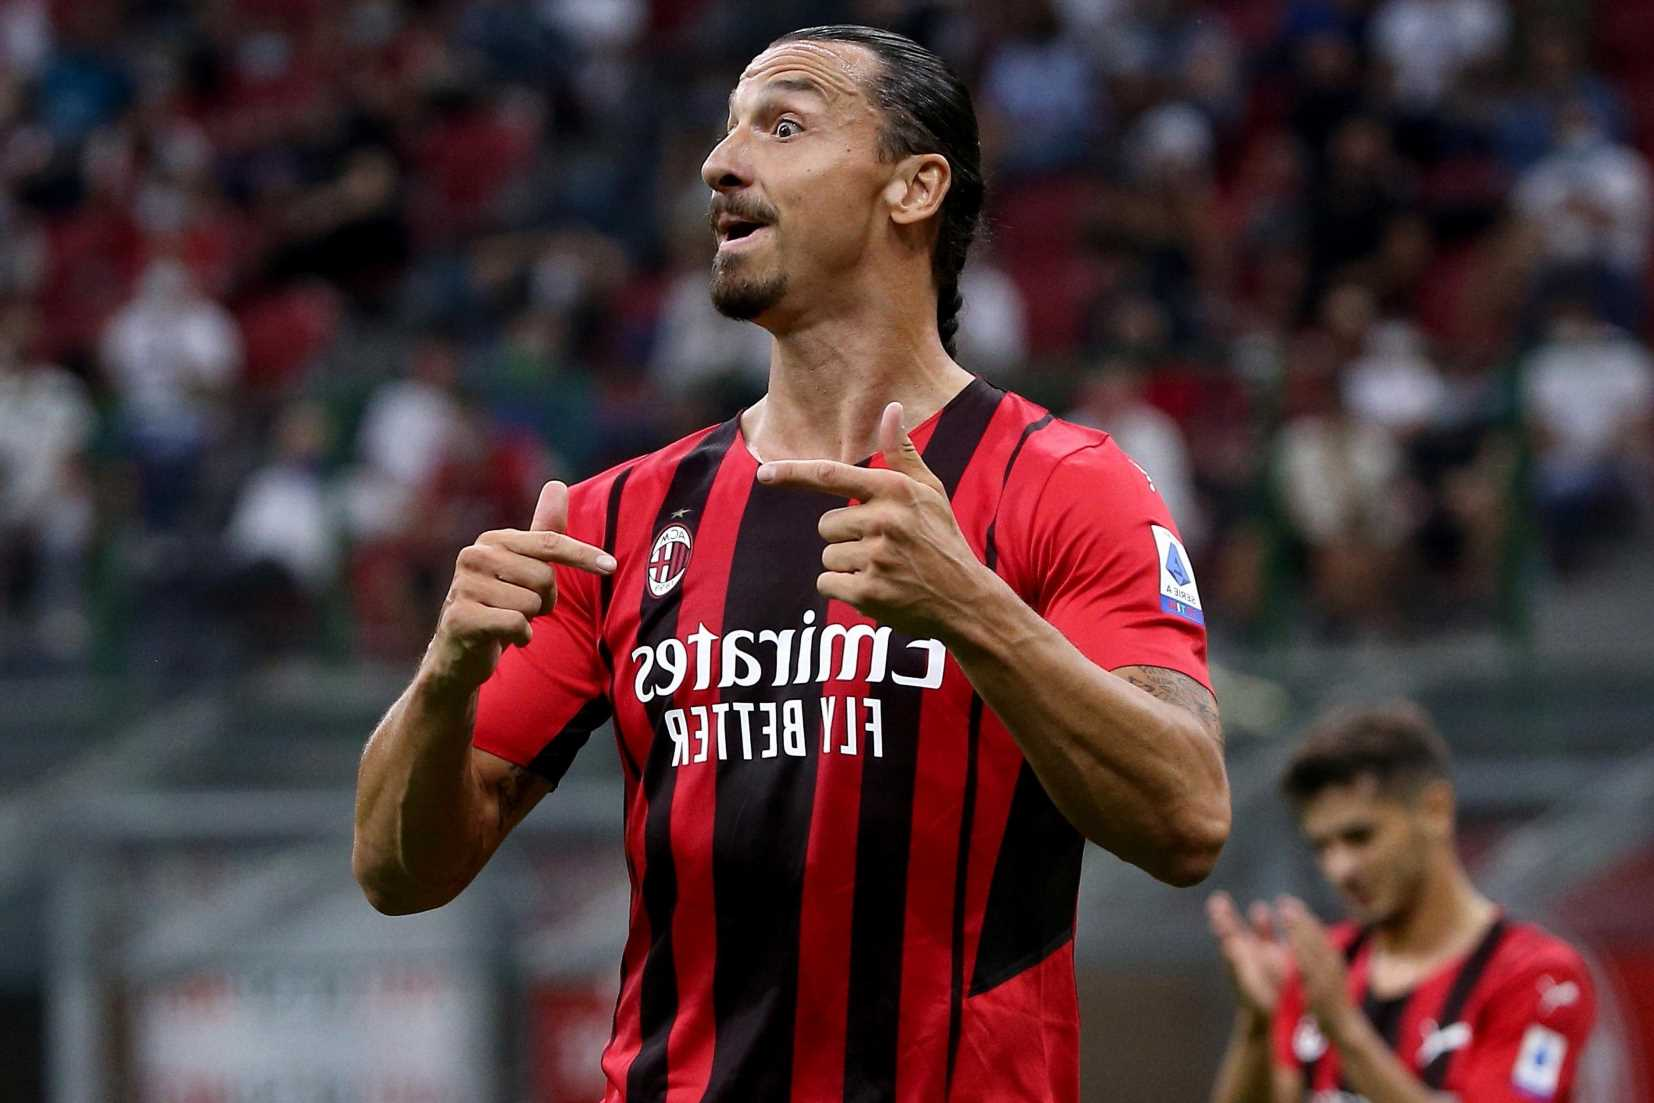 Zlatan Ibrahimovic 'ruled OUT of AC Milan's Champions League clash against Liverpool with Achilles injury'